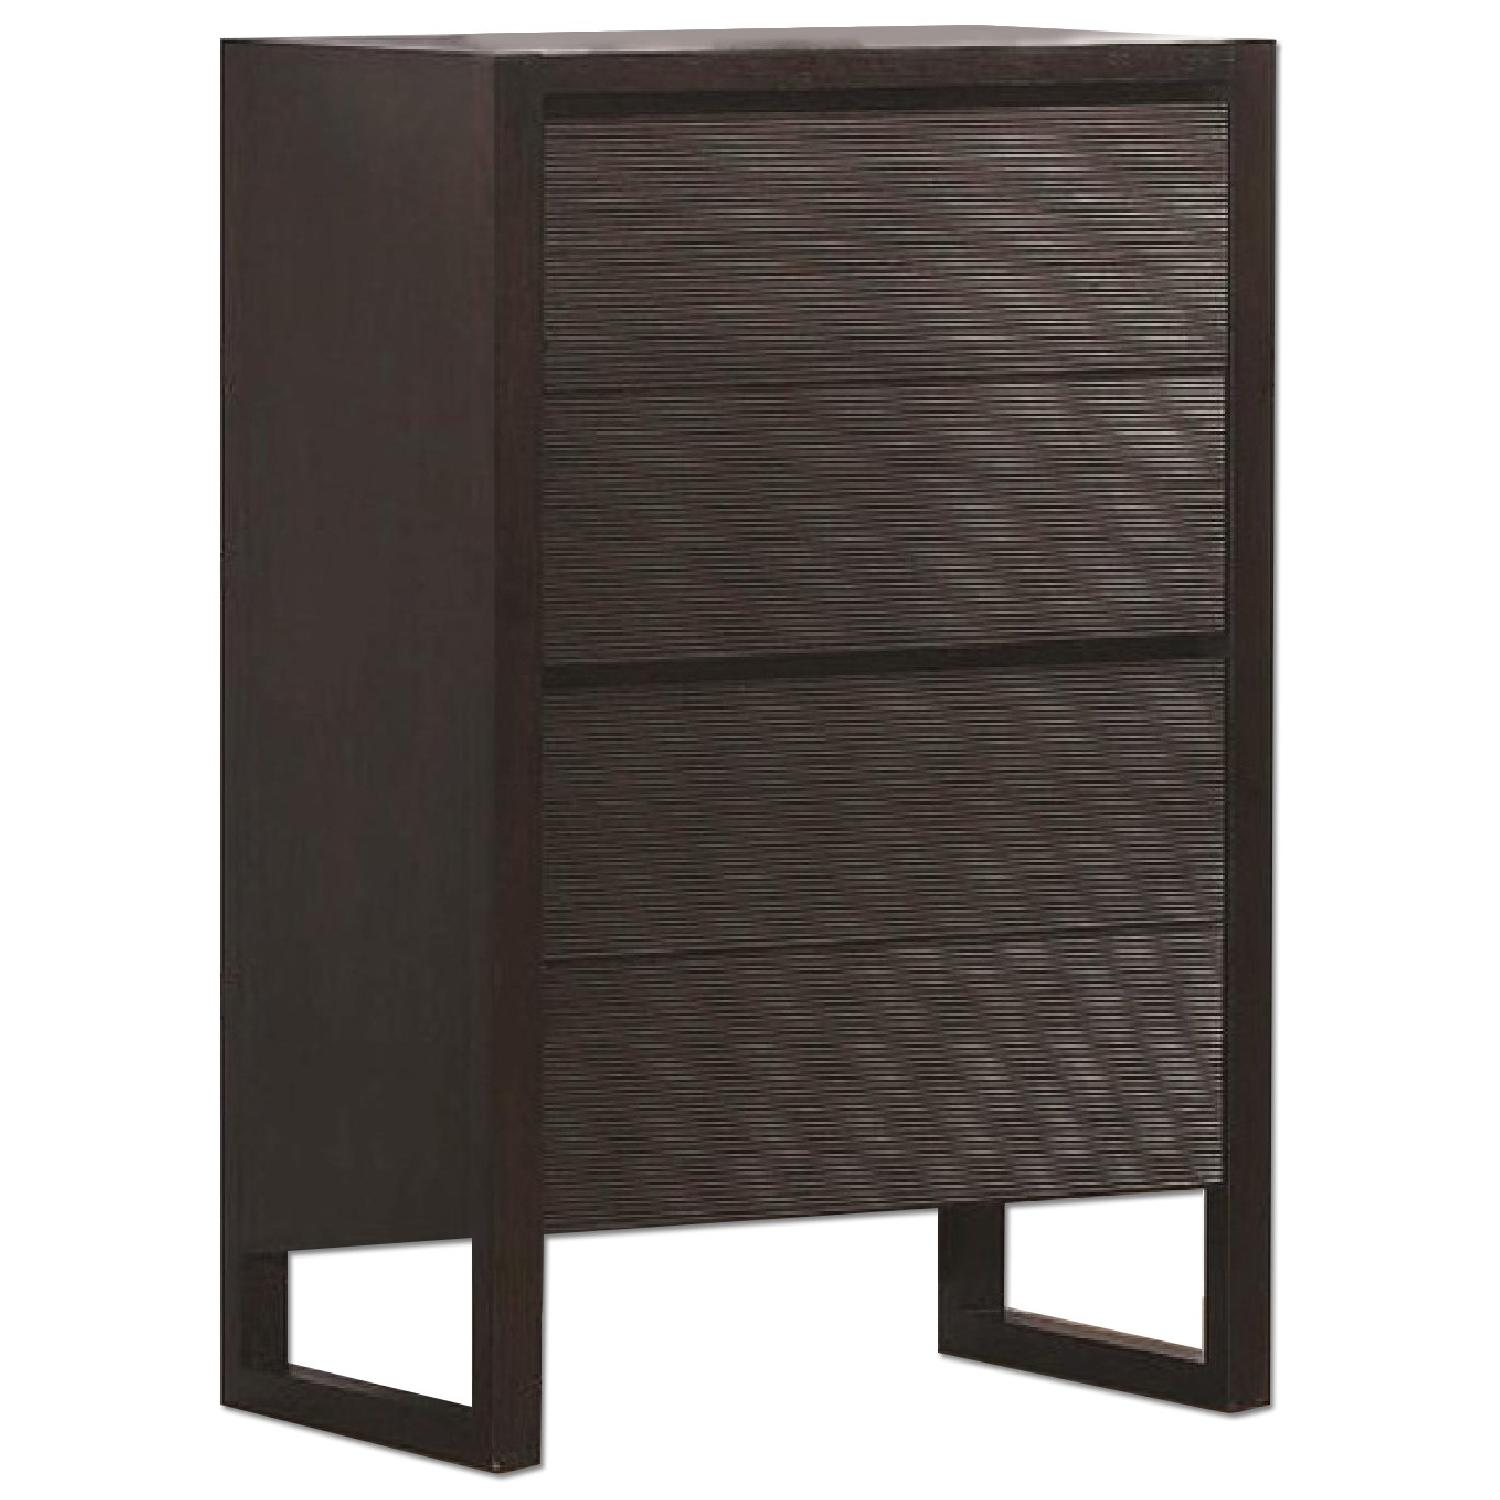 Mid Century Style 4-Drawer Chest in Wenge Finish